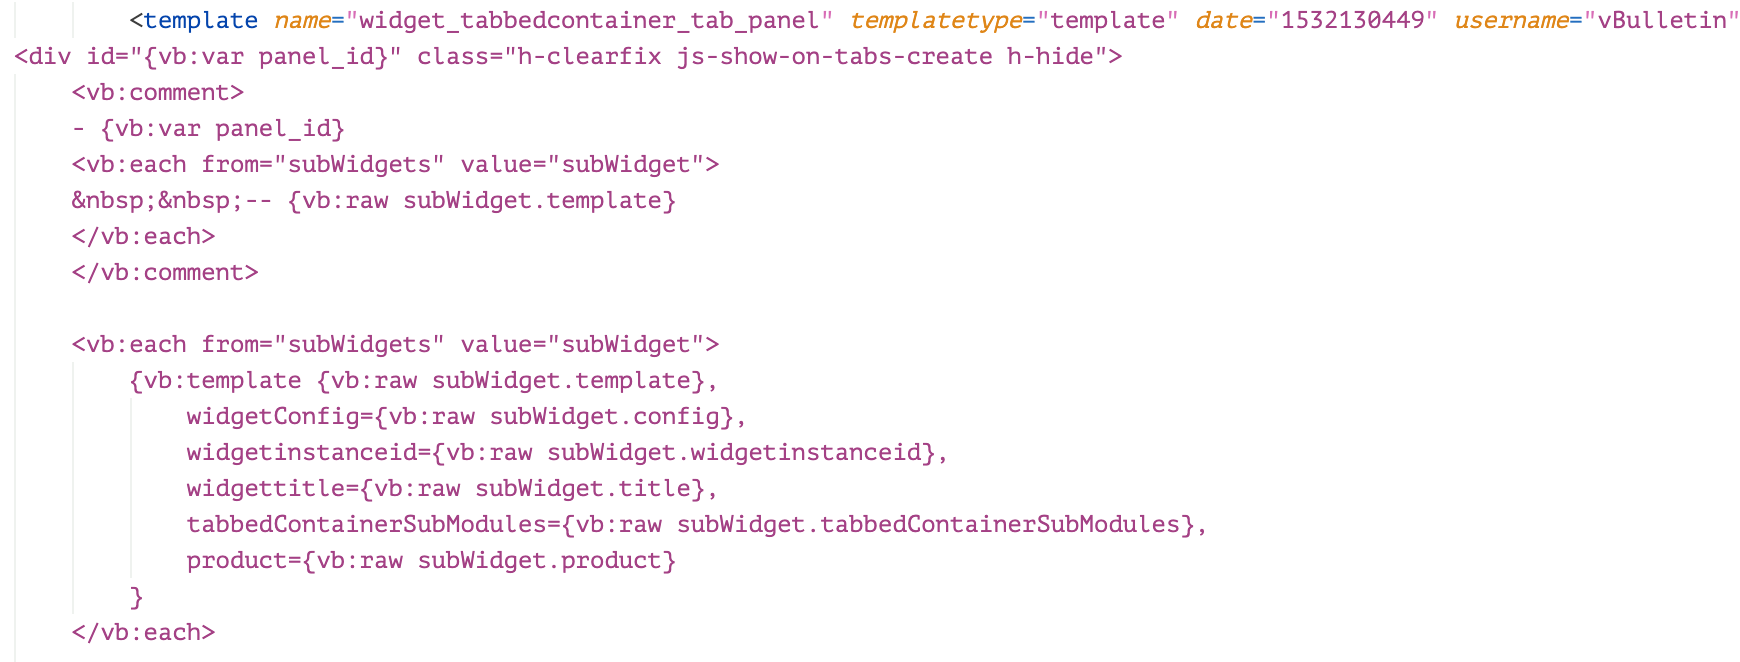 This shows code from the template widget_tabbedcontainer_tab_panel, which can be utilitzed to load widget_php